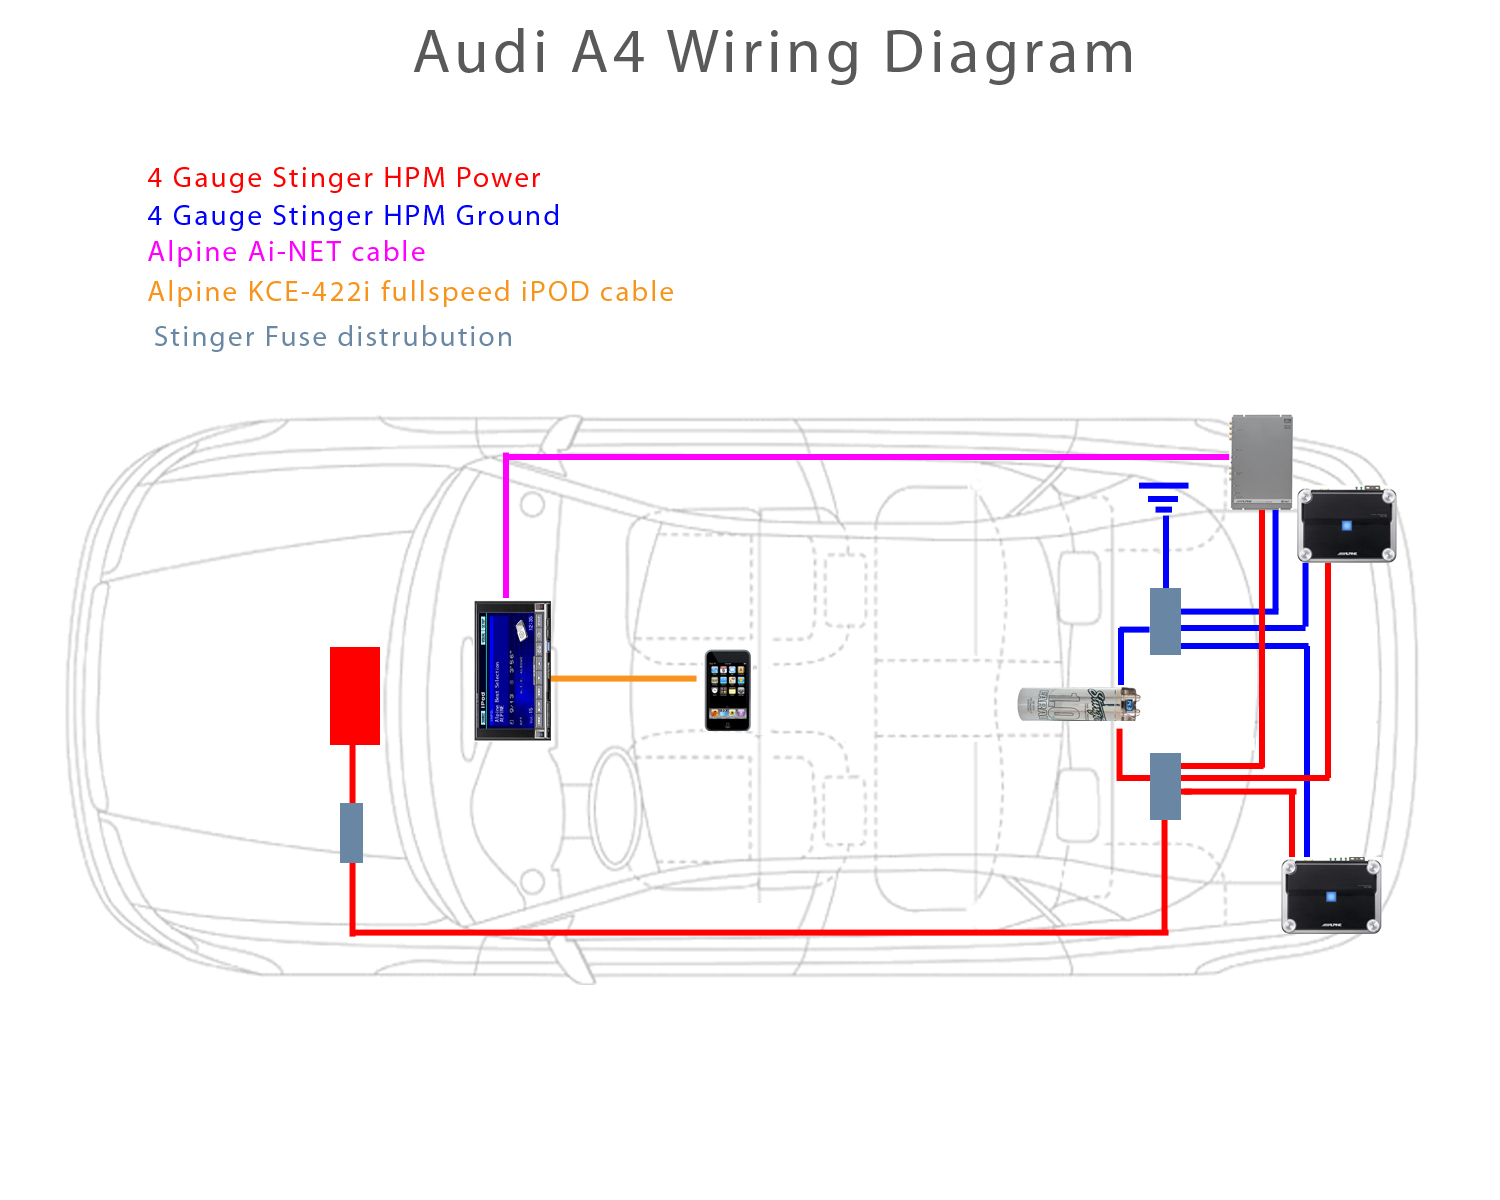 Audi 500 wiring diagram new wiring diagram 2018 audi 500 wiring diagram carter talon 150cc go kart wiring diagram b5 audi a4 relay diagram 2006 audi a6 4 2 diagram audi a4 stereo wiring diagram on audi asfbconference2016 Gallery